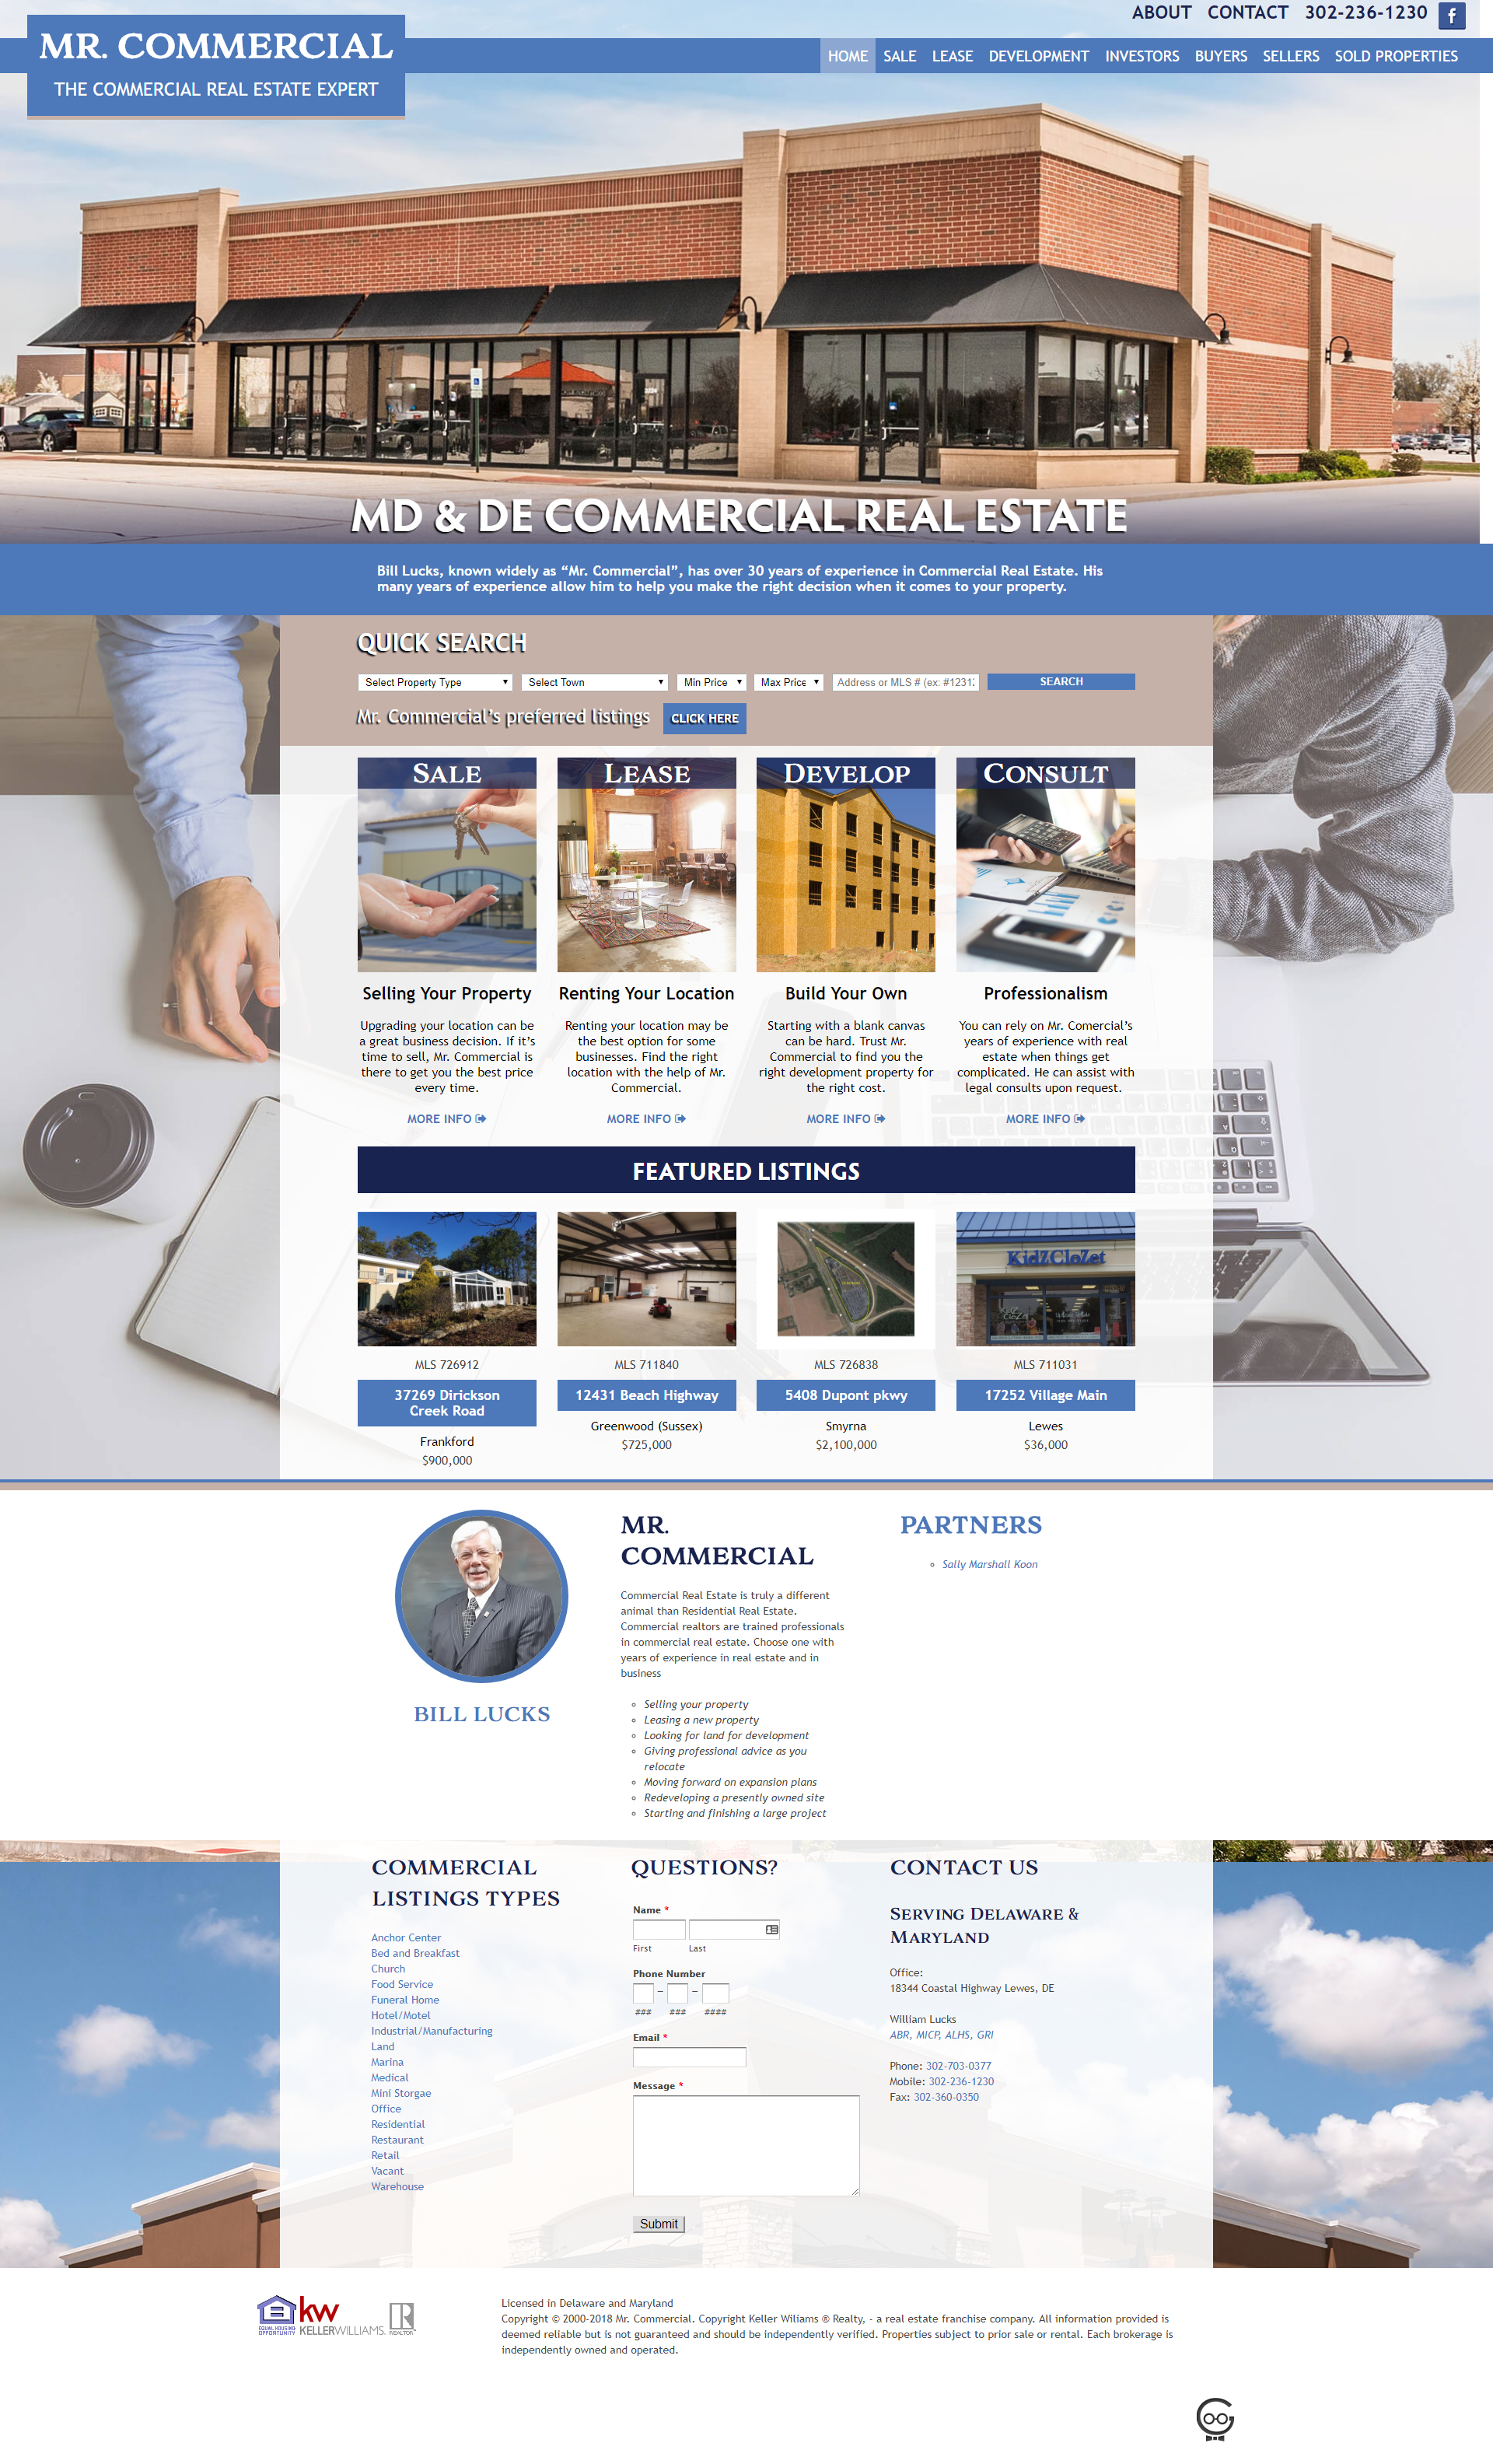 Mr. Commcerial Home page